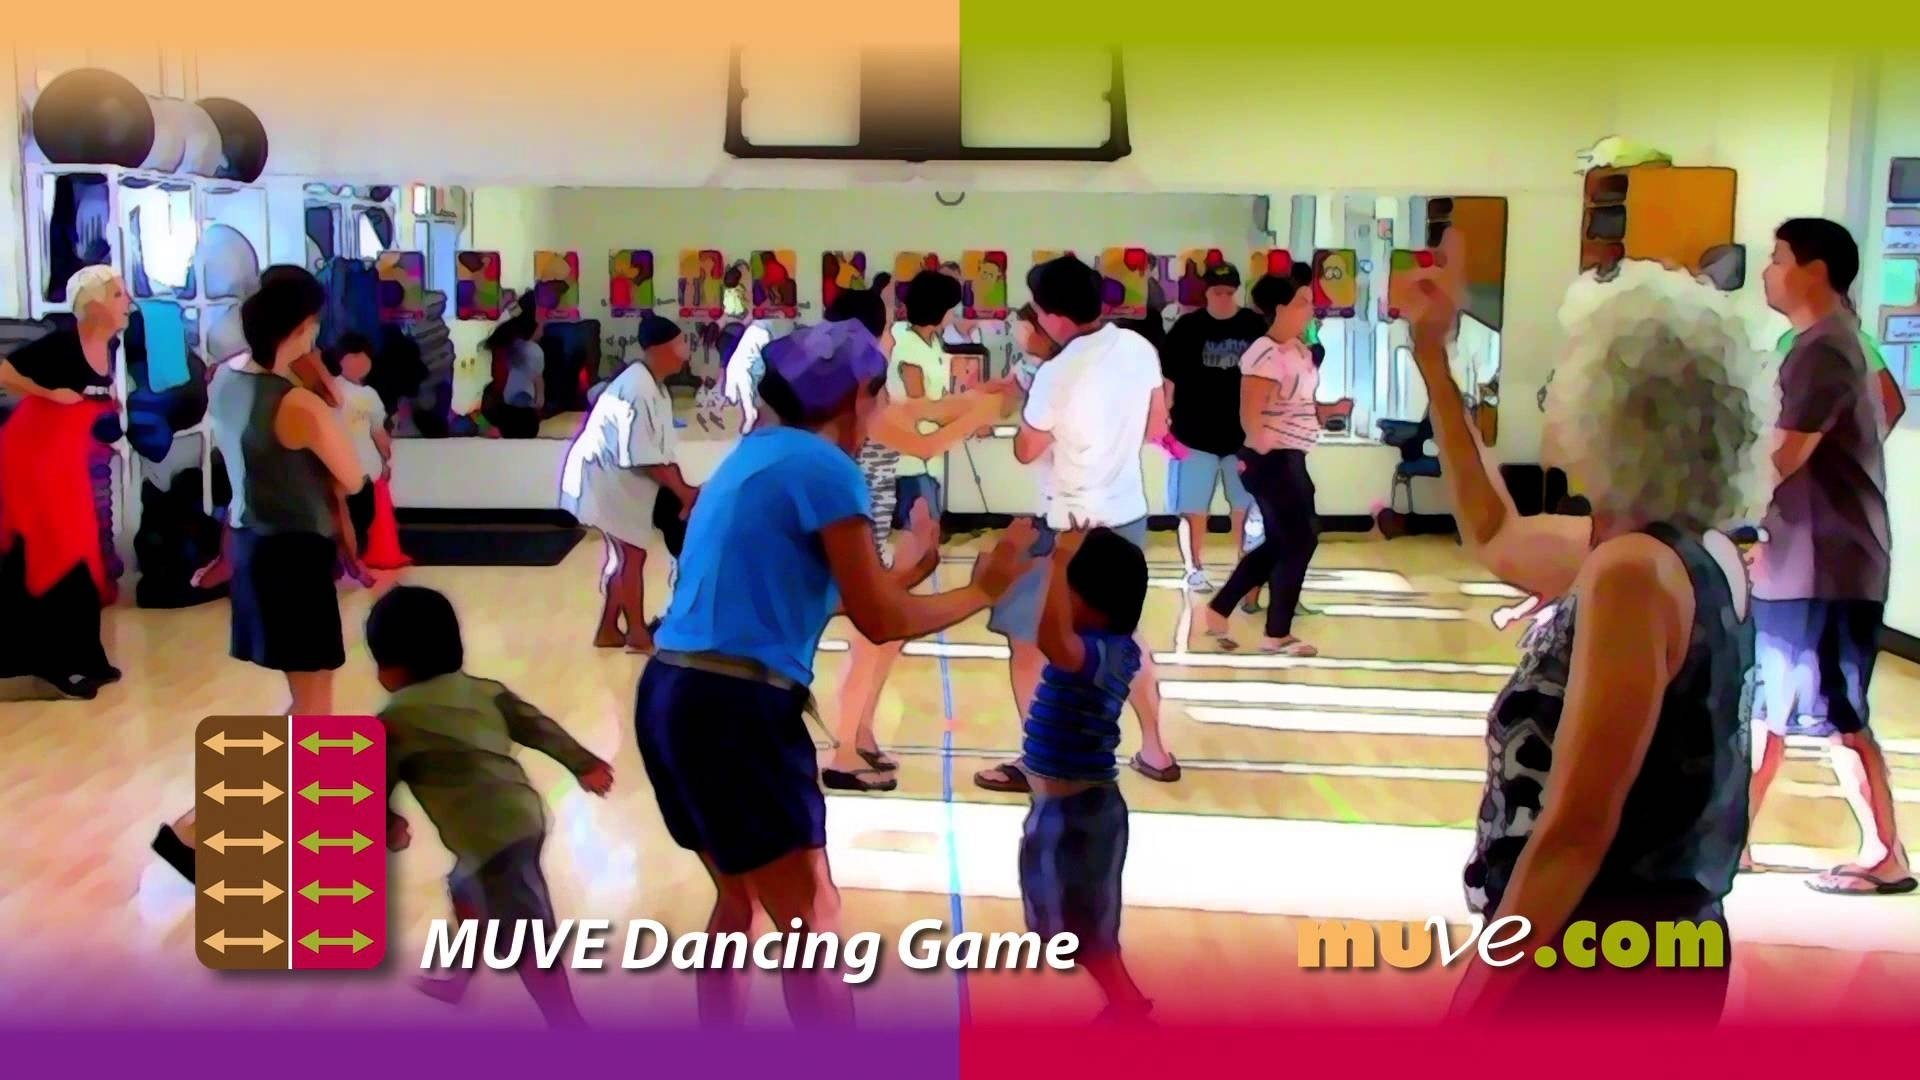 10 Fabulous Party Entertainment Ideas For Adults fun family activities party games for children teens and adults 1